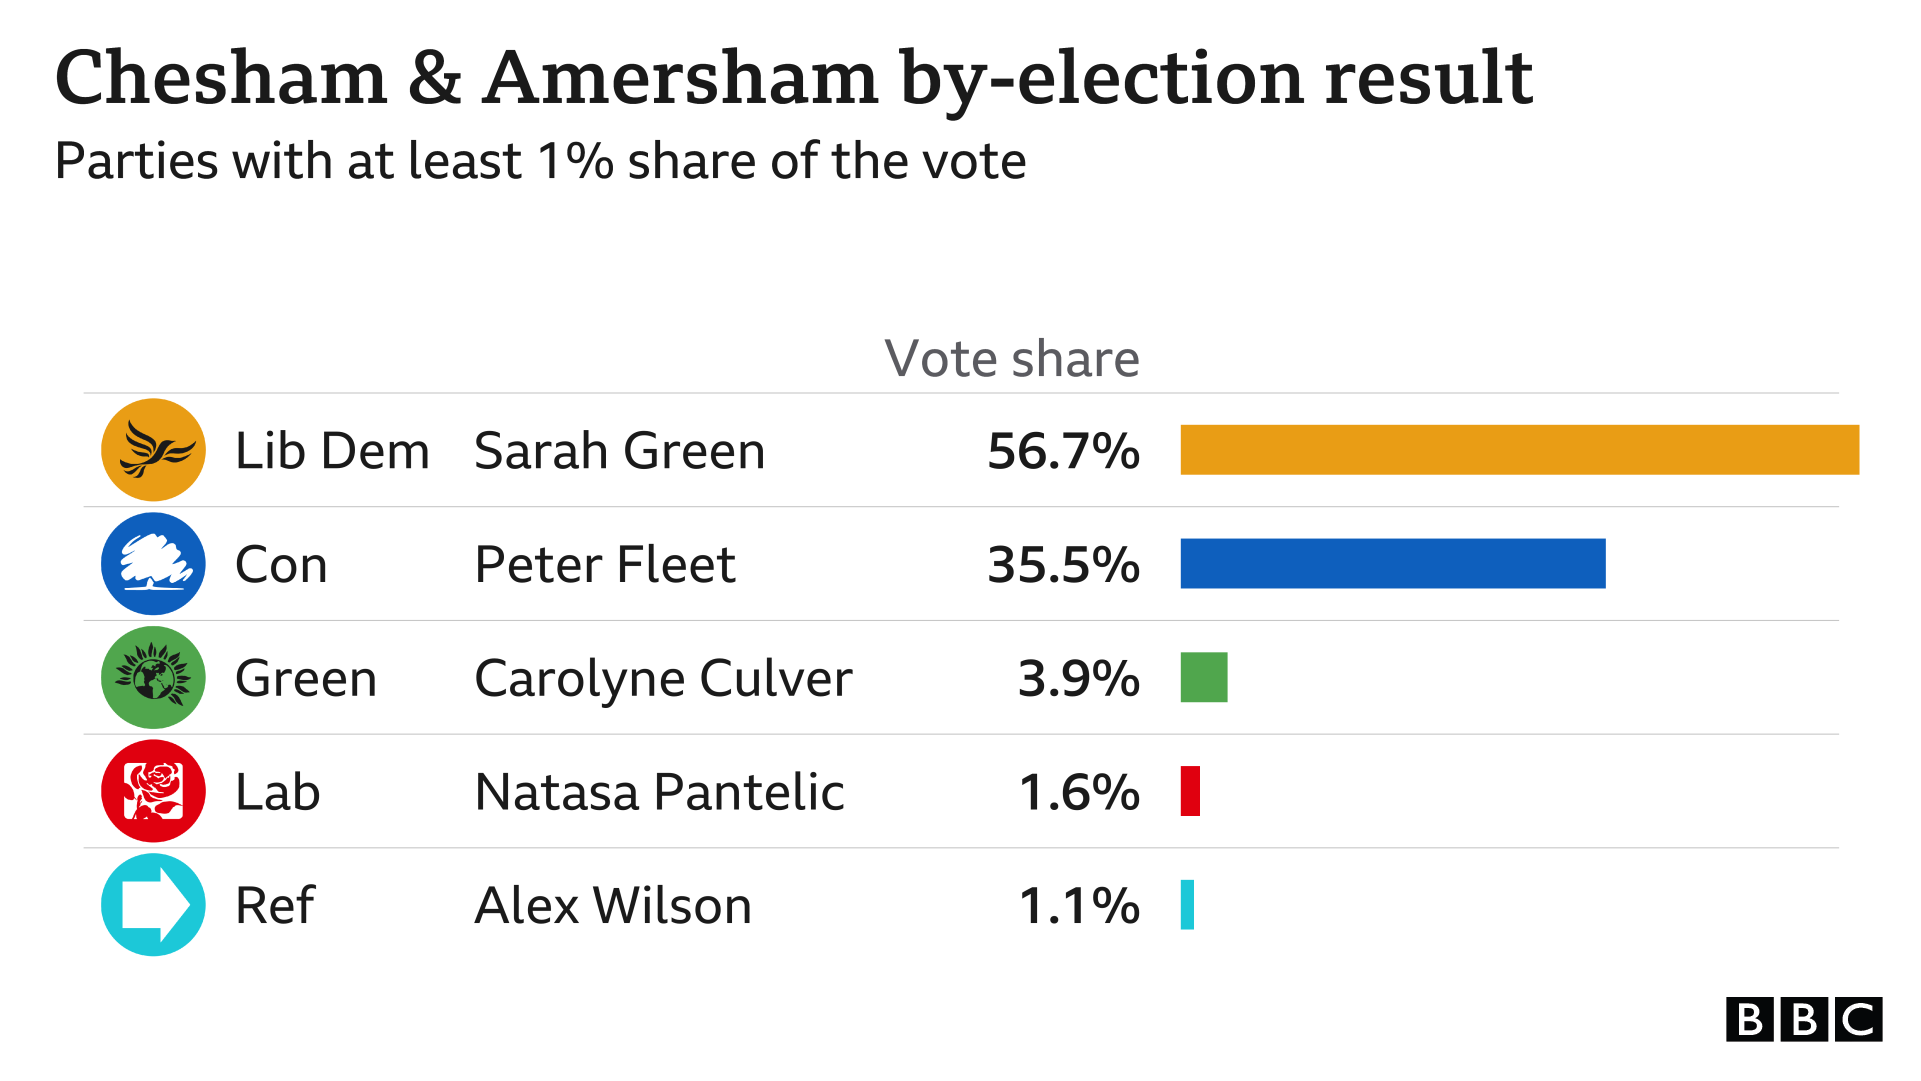 By-election result